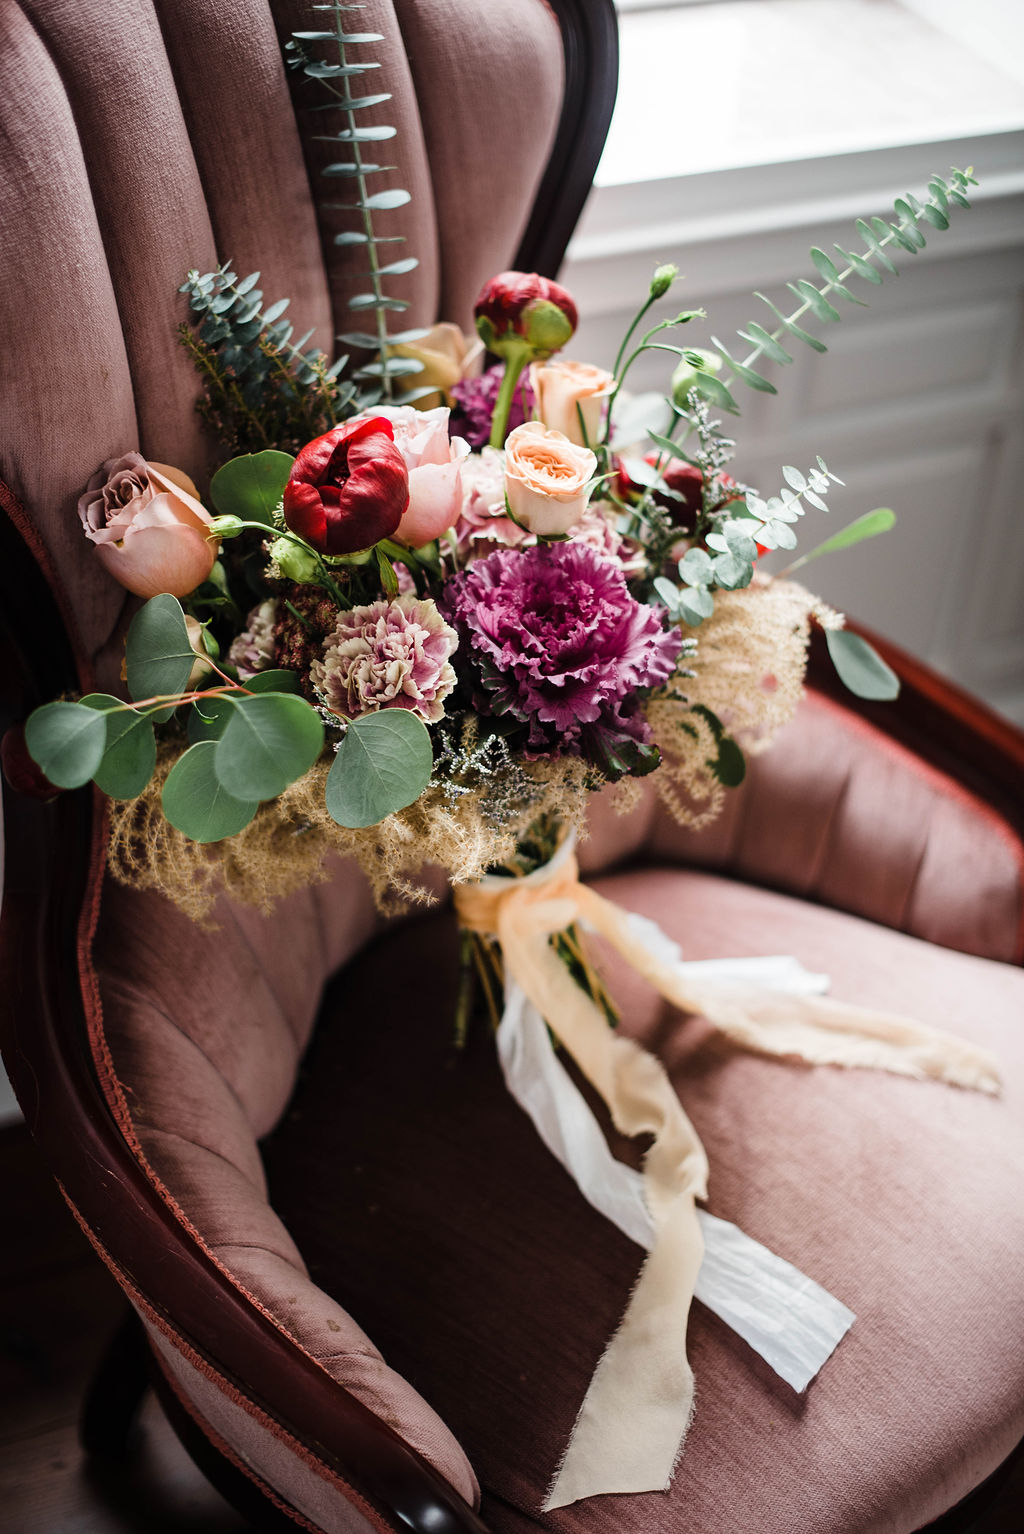 A moody, overcast day at Belle Garden Estate called for lush jewel-toned florals to offset the leather details in this styling. The pink kale and pampas grass offer unique variety in texture alongside the wine peonies and eucalyptus. #floraldesign #weddingflorals #weddingflowers #virginiawedding #virginiabride #virginiaflorist